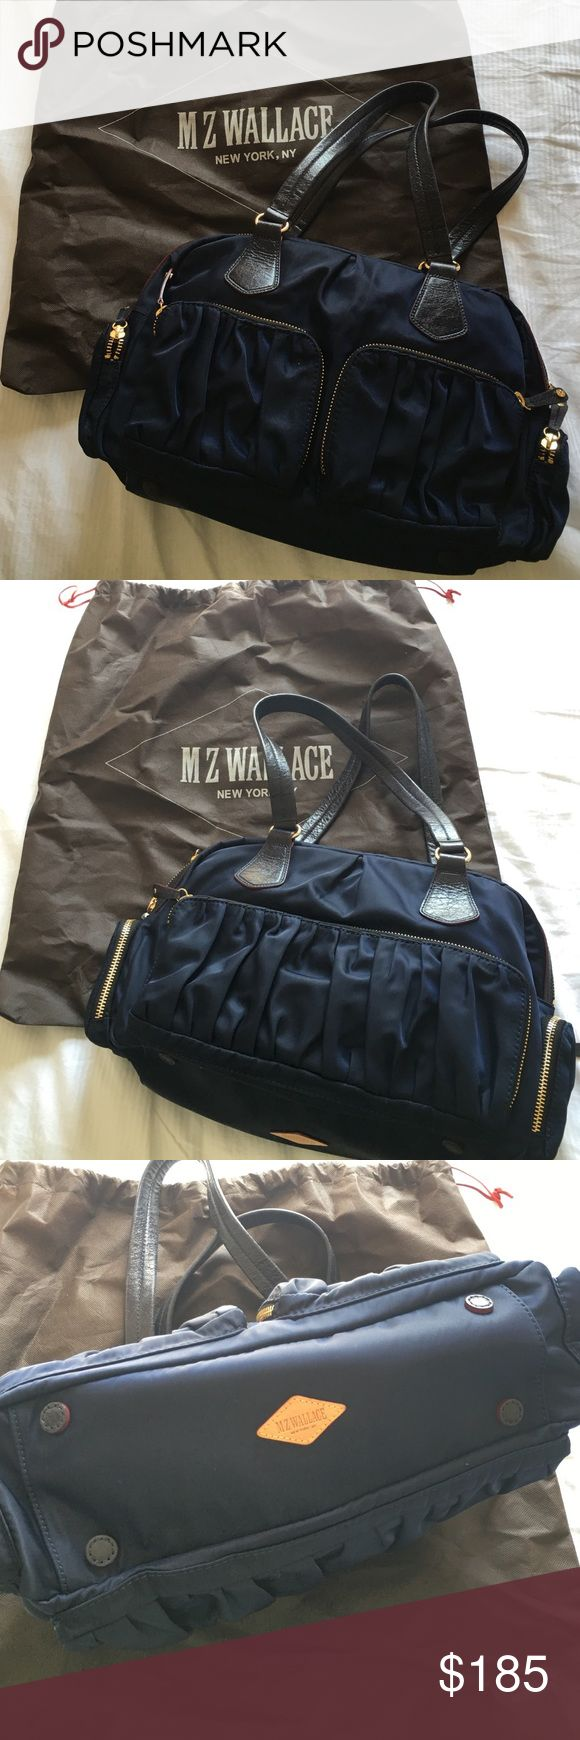 M Z Wallace New York Navy shoulder bag Wore it only couple times. Dust bag and small pouch are included. Crafted of soft nylon with ruched pockets and contrast-edge leather trim. Stylish yet functional. Although I only wore it couple times, a small pouch lining has signs of wear (last picture) But overall excellent condition. From pet free + non-smoking house. No trade please. MZ Wallace Bags Shoulder Bags